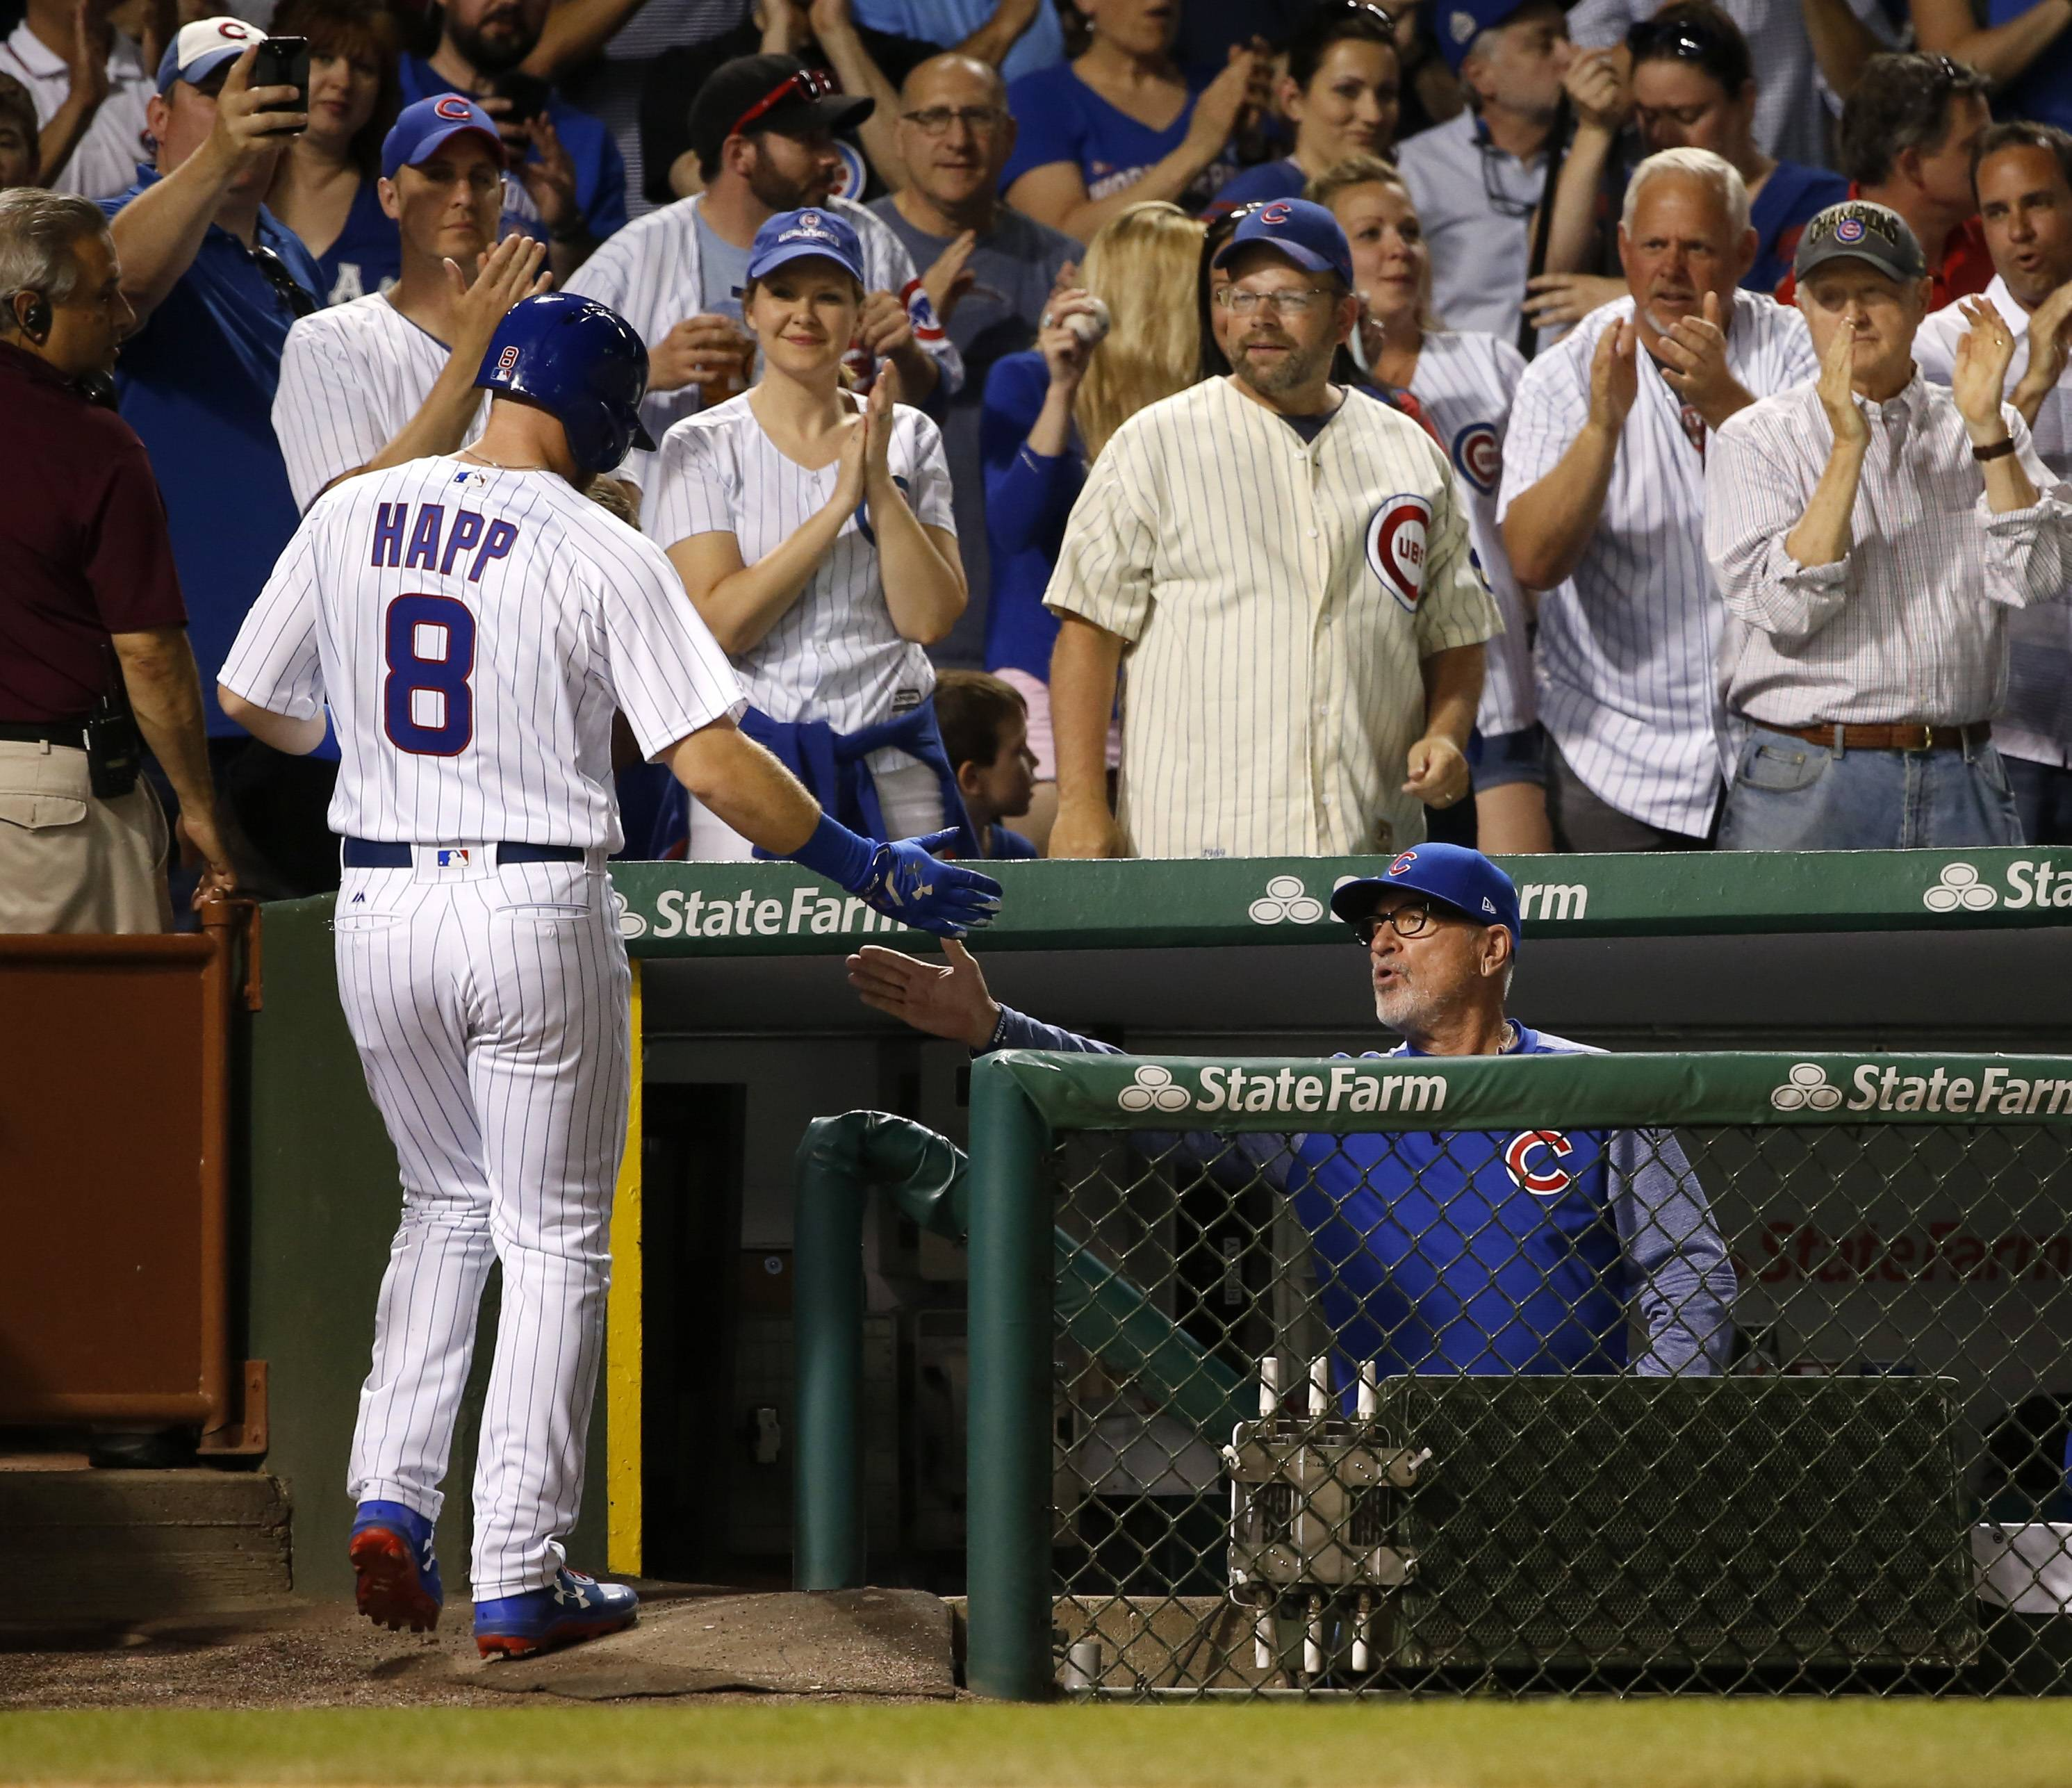 Happ stays, but is Schwarber done leading off for Chicago Cubs?